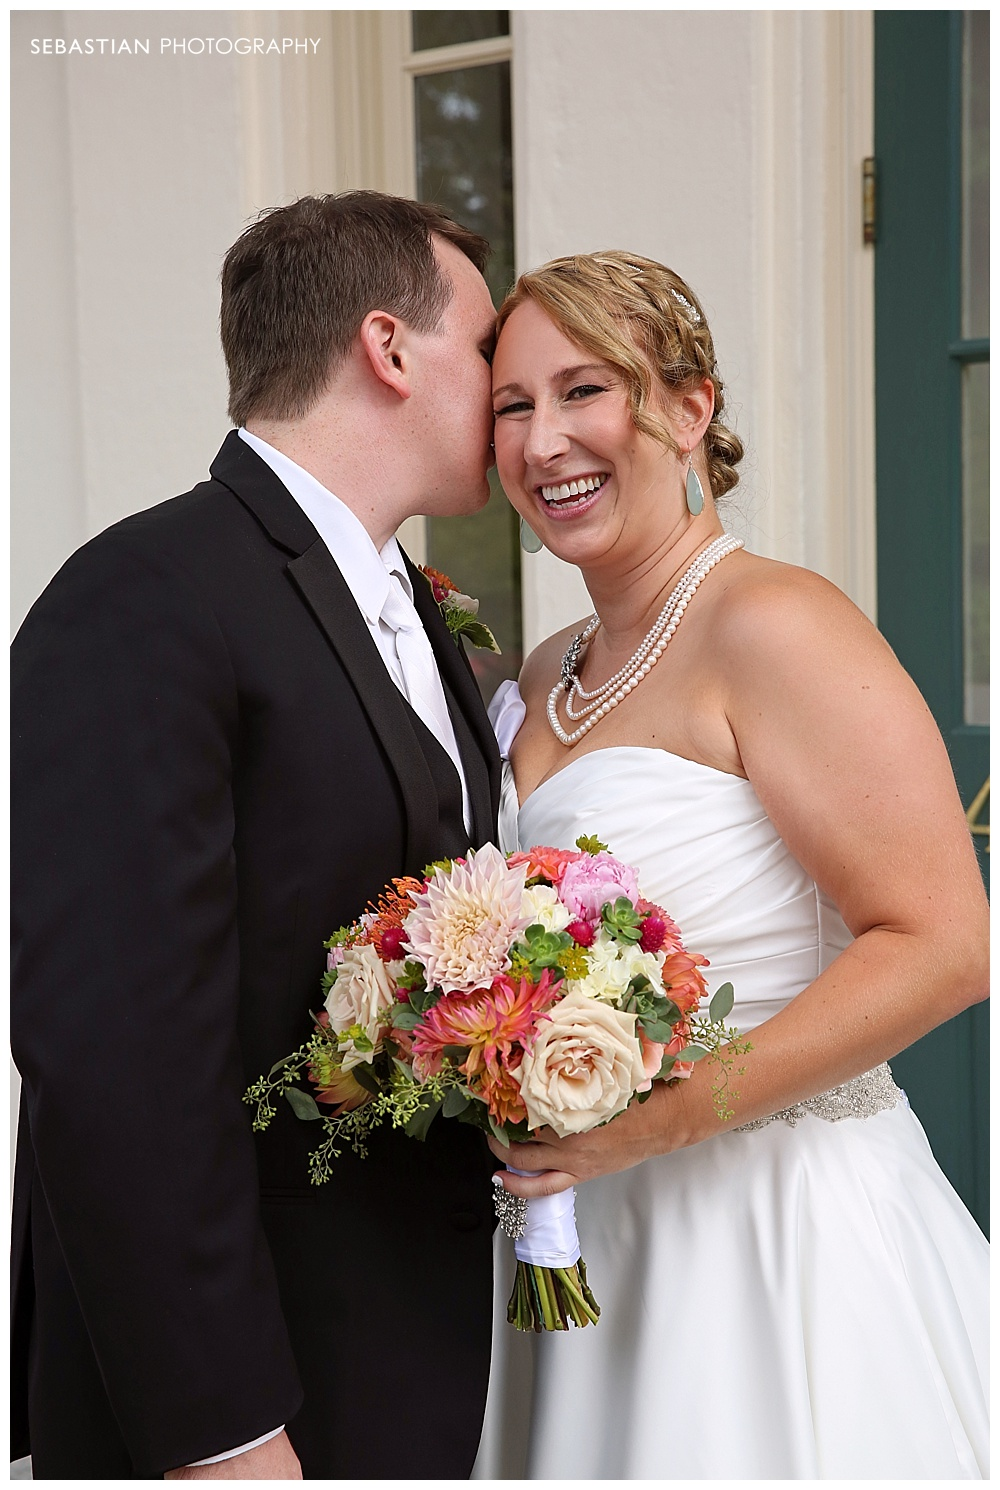 Sebastian_Photography_Wadsworth_Mansion_Wedding_Pictures_CT_24.jpg